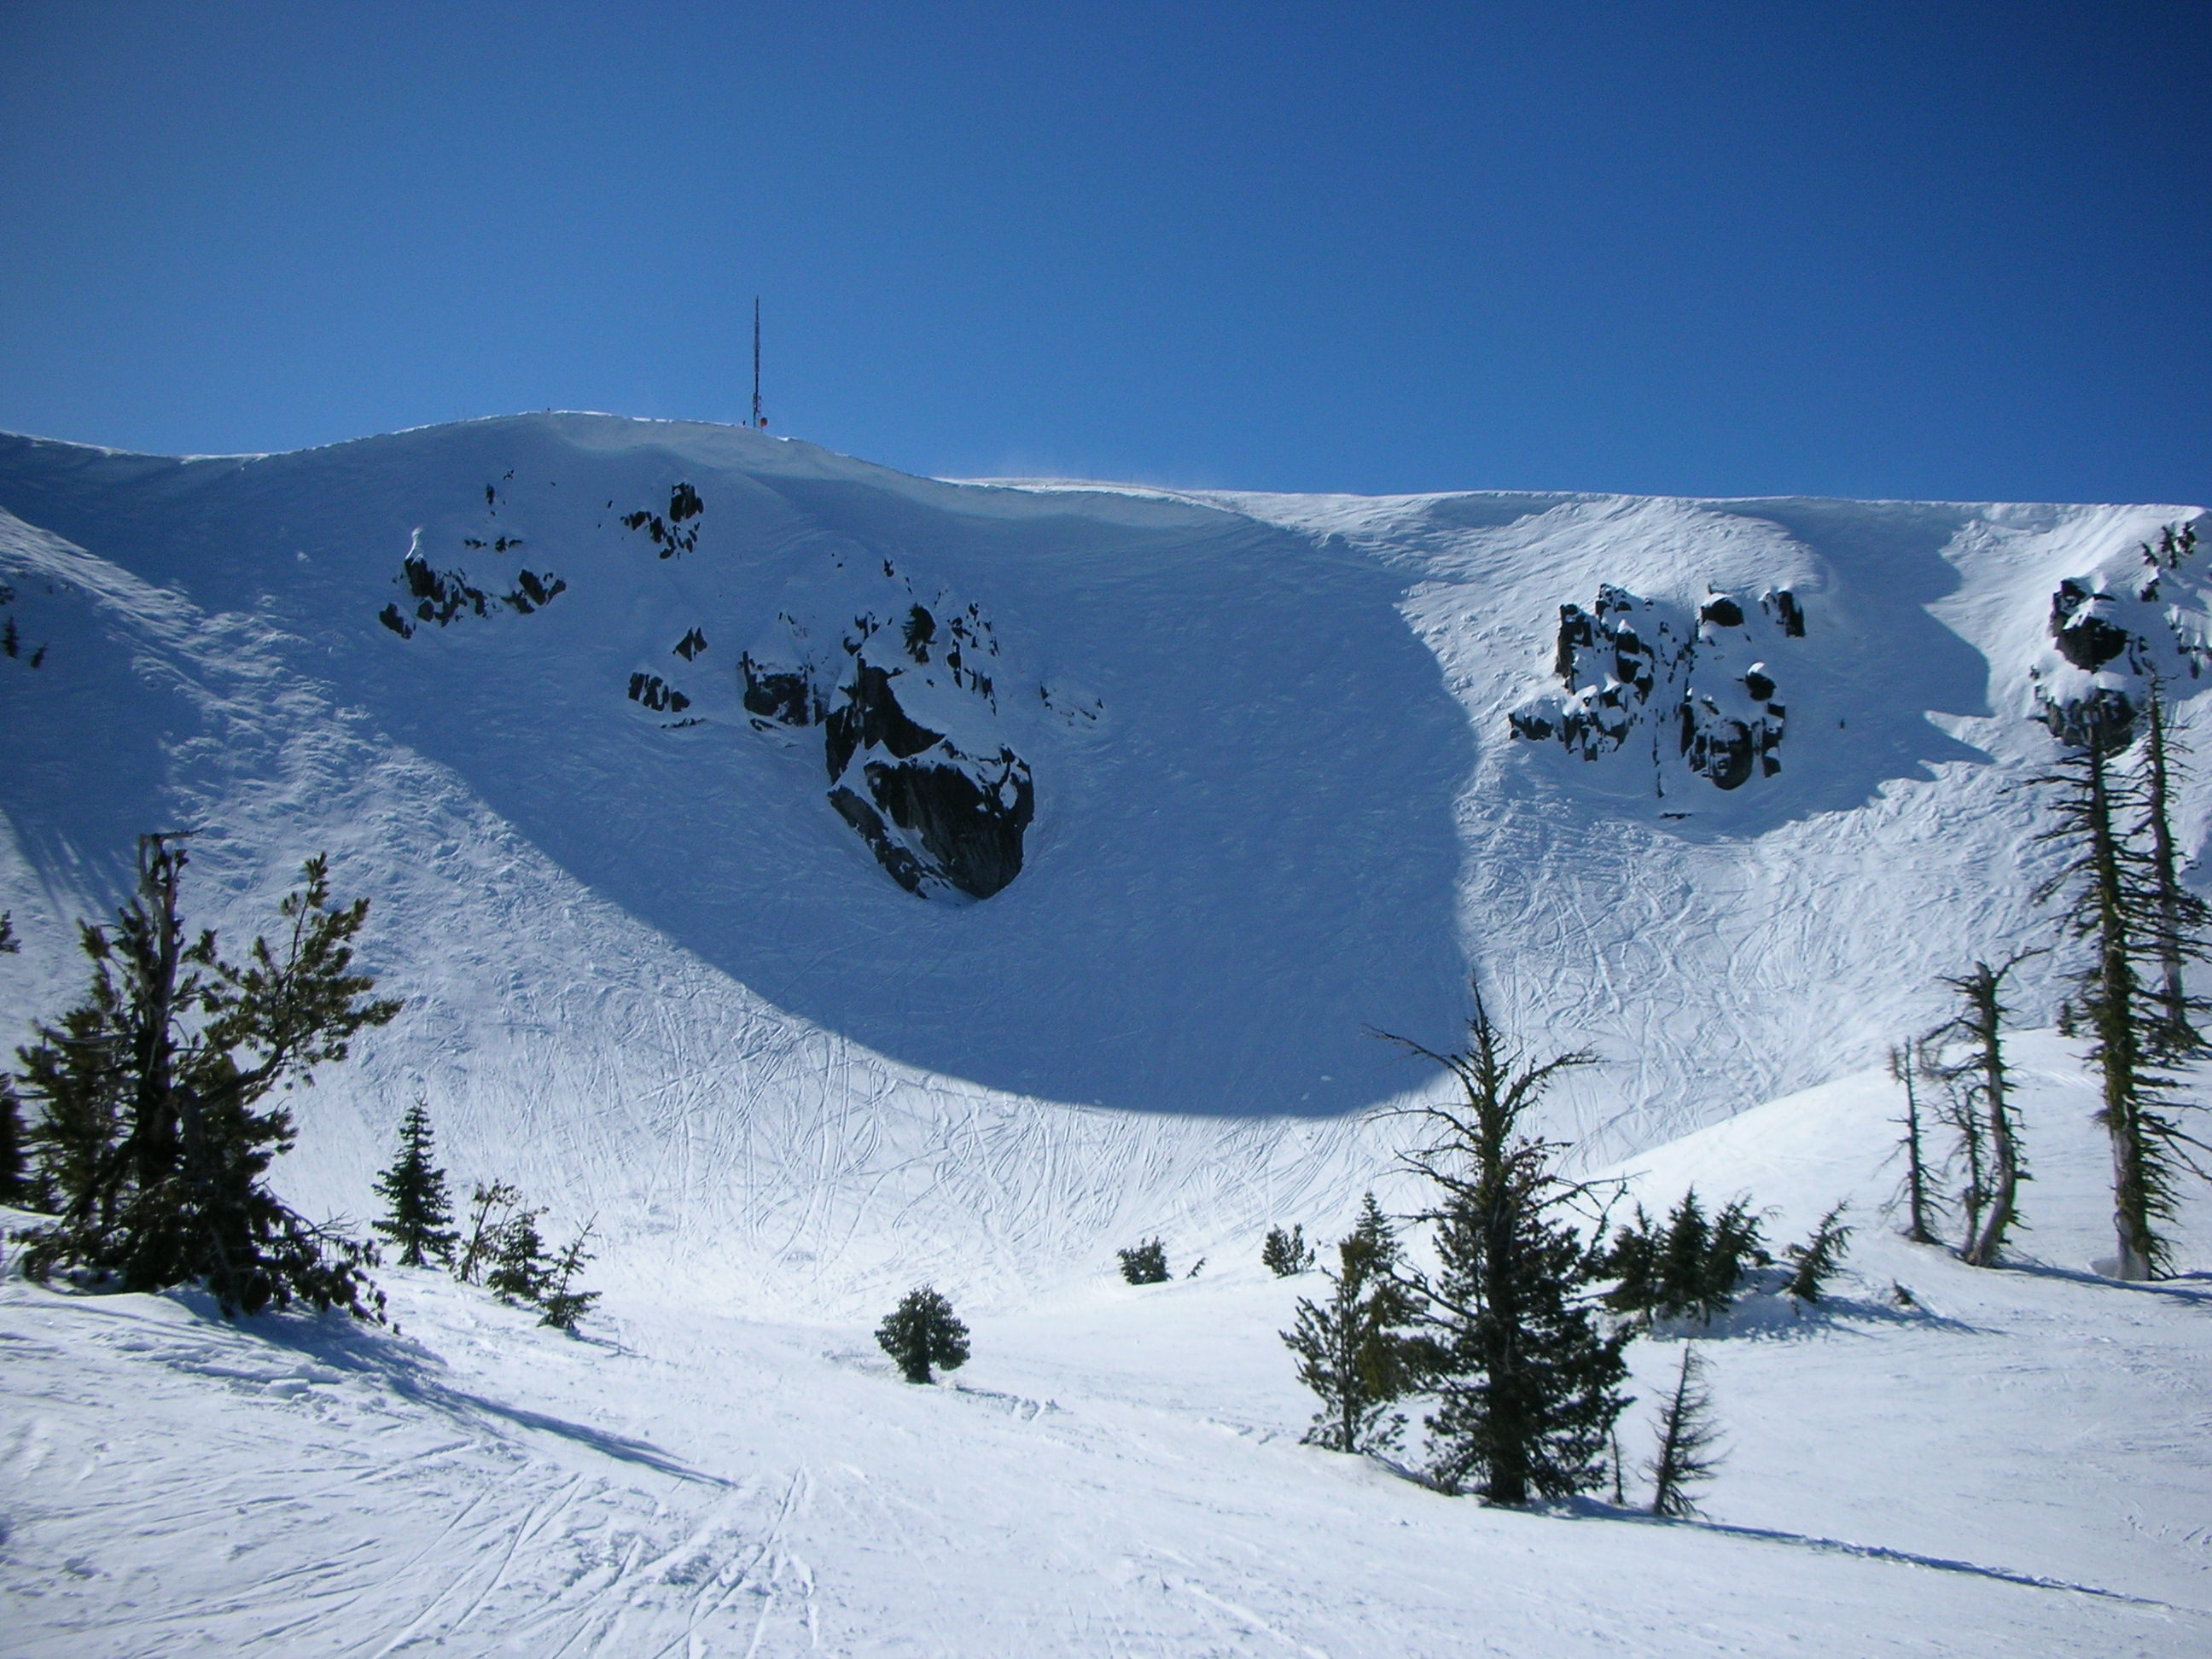 Ashland (WI) United States  city images : north south ski bowl, Idaho, United States What happens in north ...